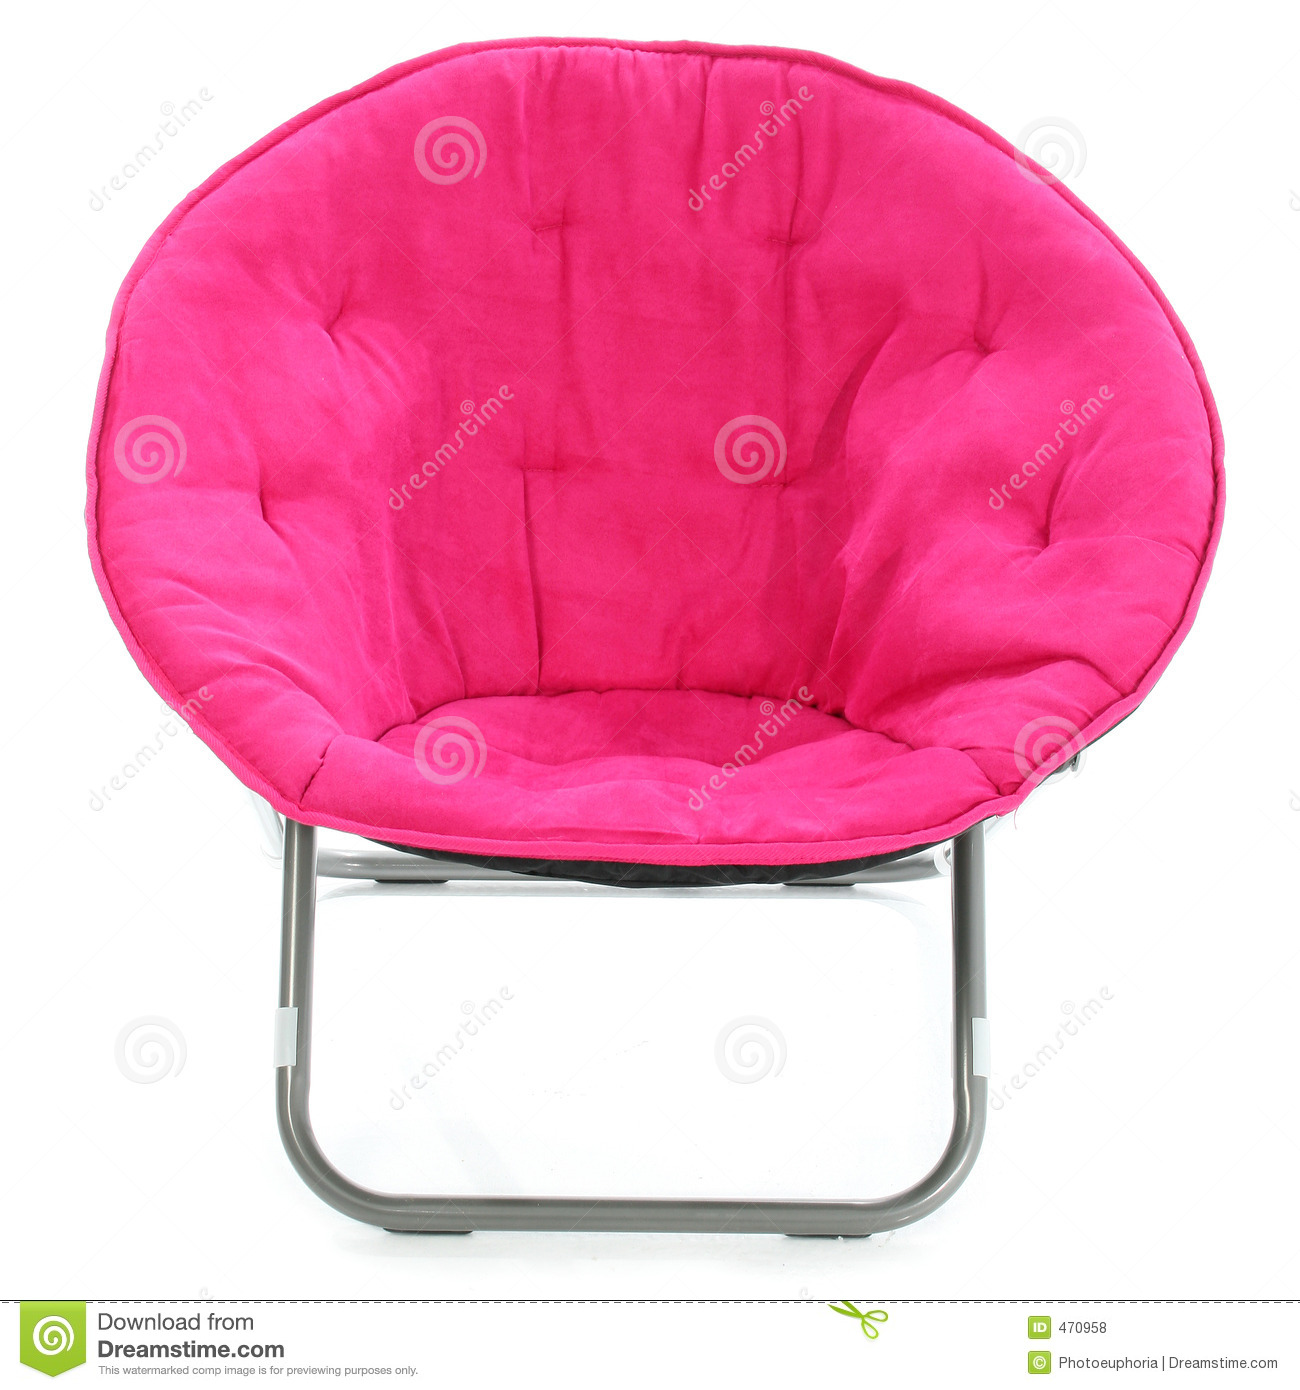 Hot Pink Chair Over White Royalty Free Stock Photos  : hot pink chair over white 470958 Desk Chair <strong>Back Support Pillow</strong> from www.dreamstime.com size 1300 x 1390 jpeg 326kB